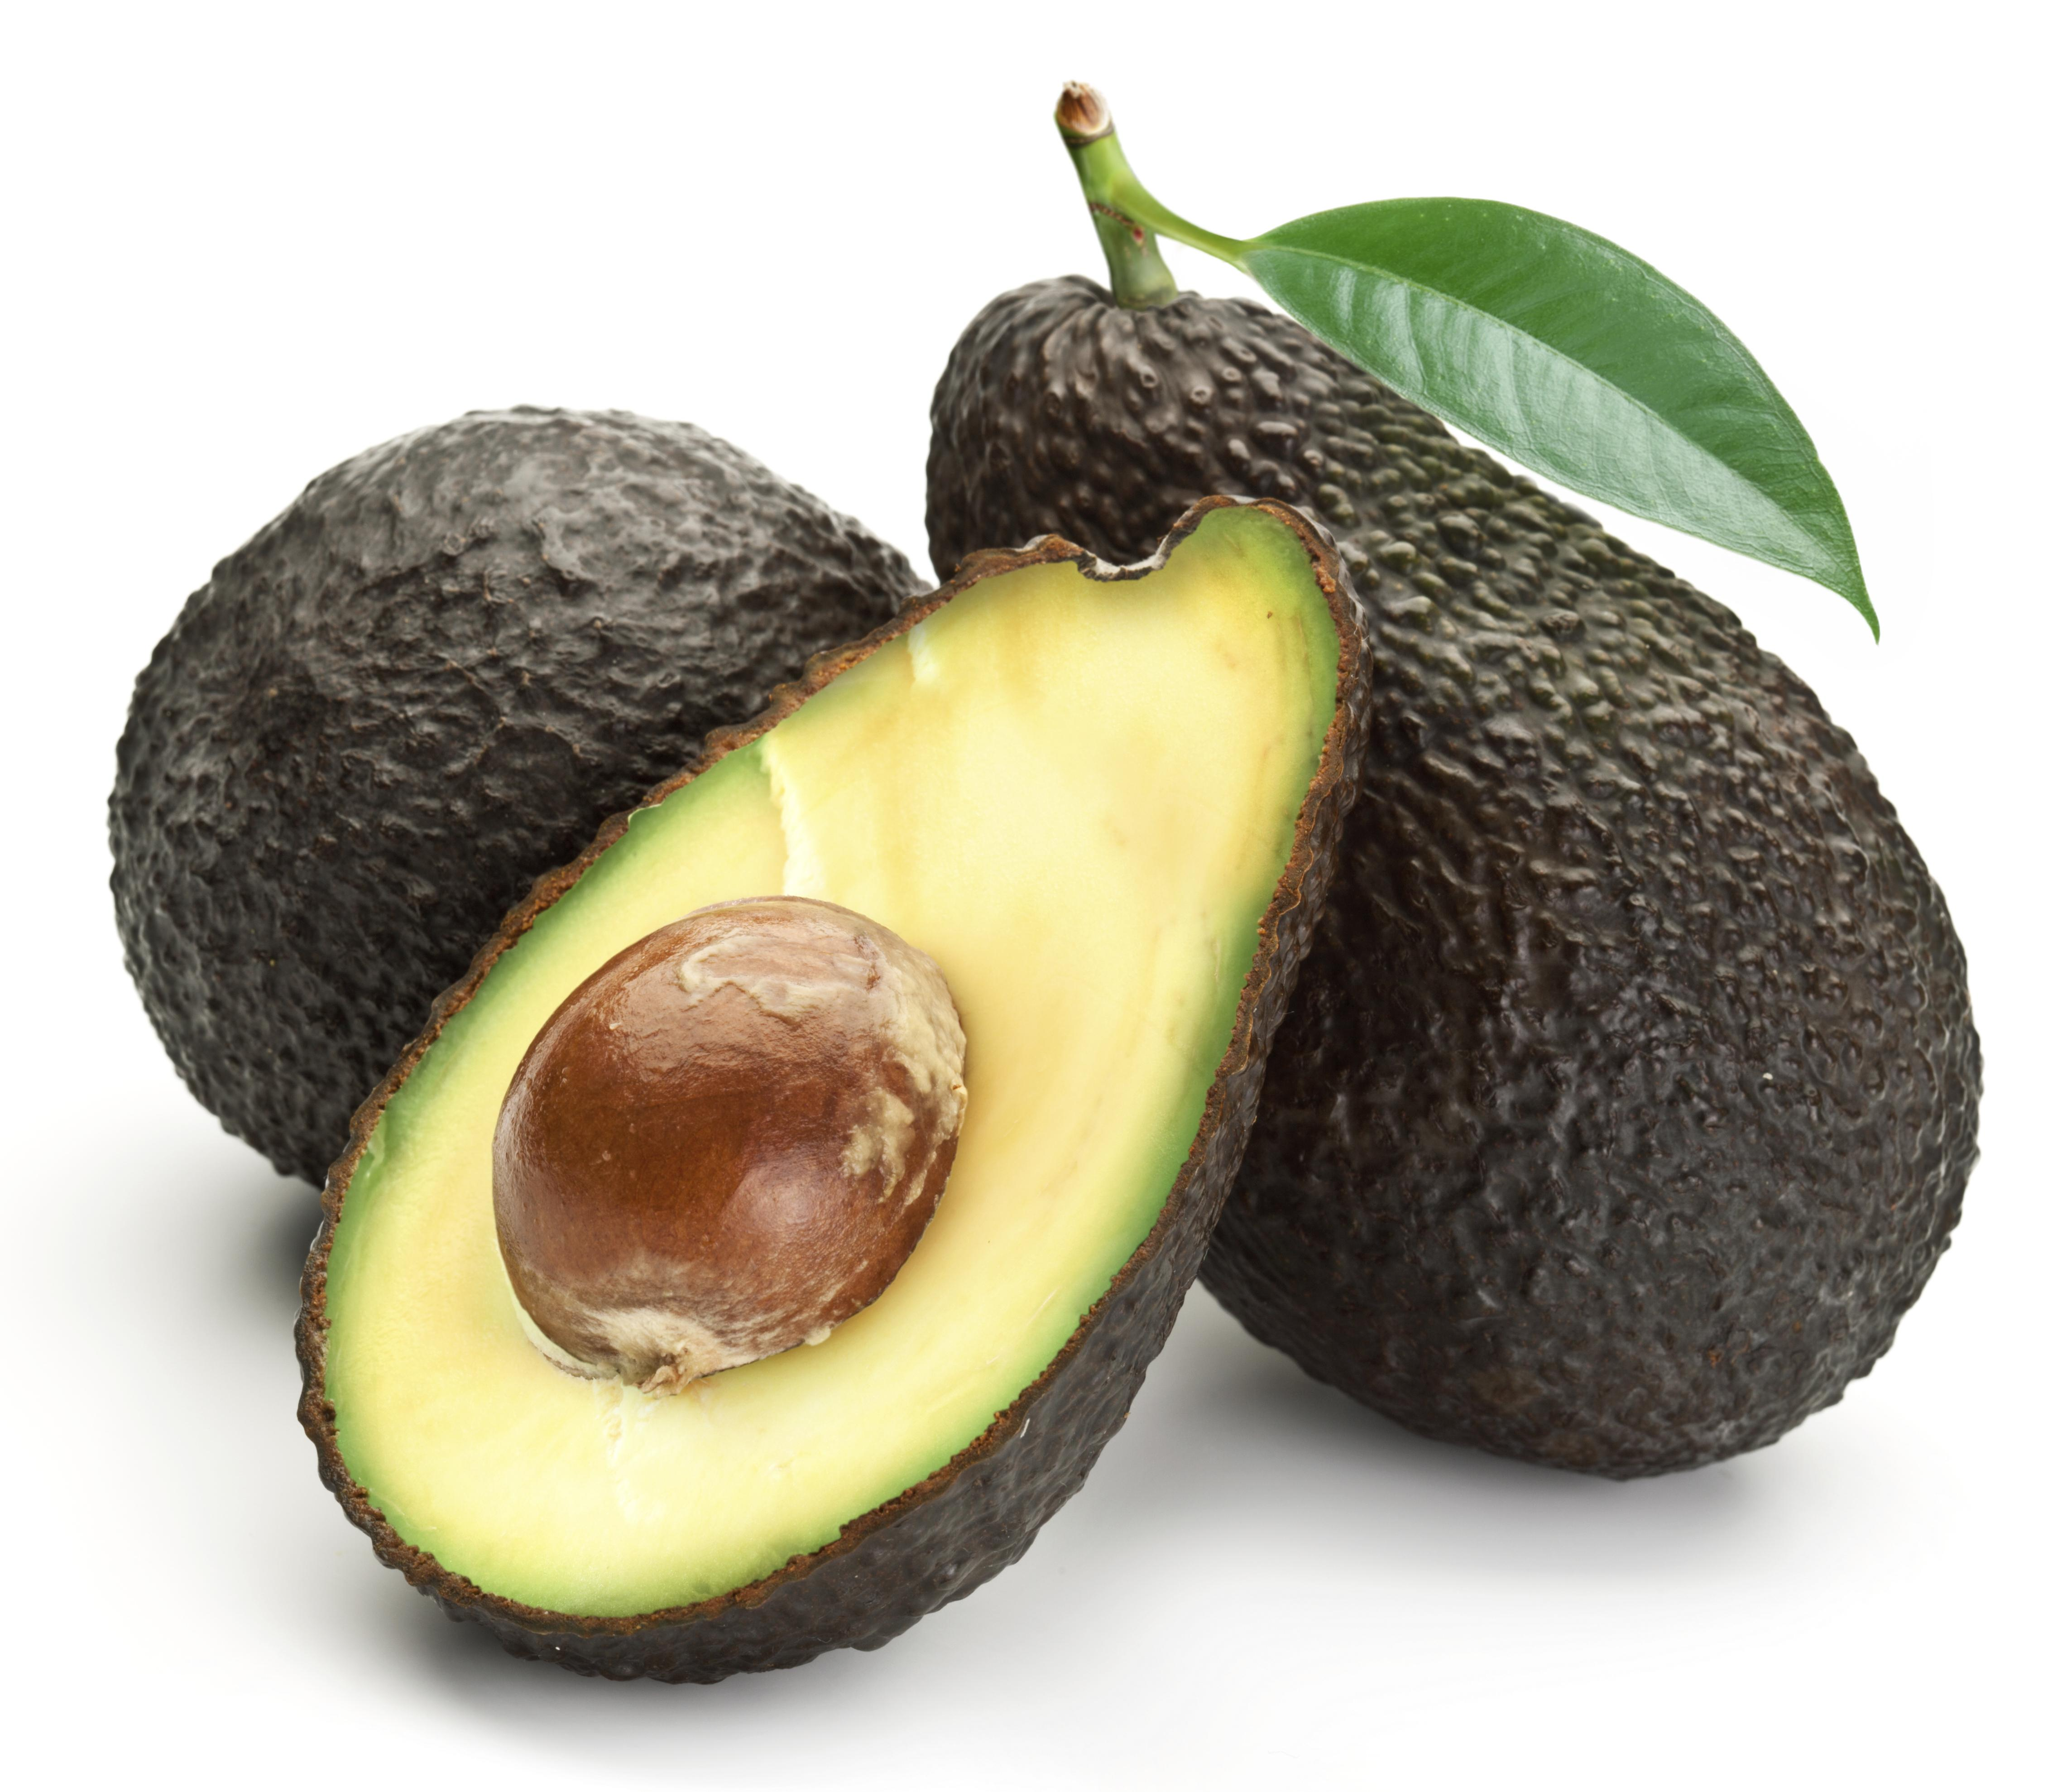 Avocados with leaves on a white background